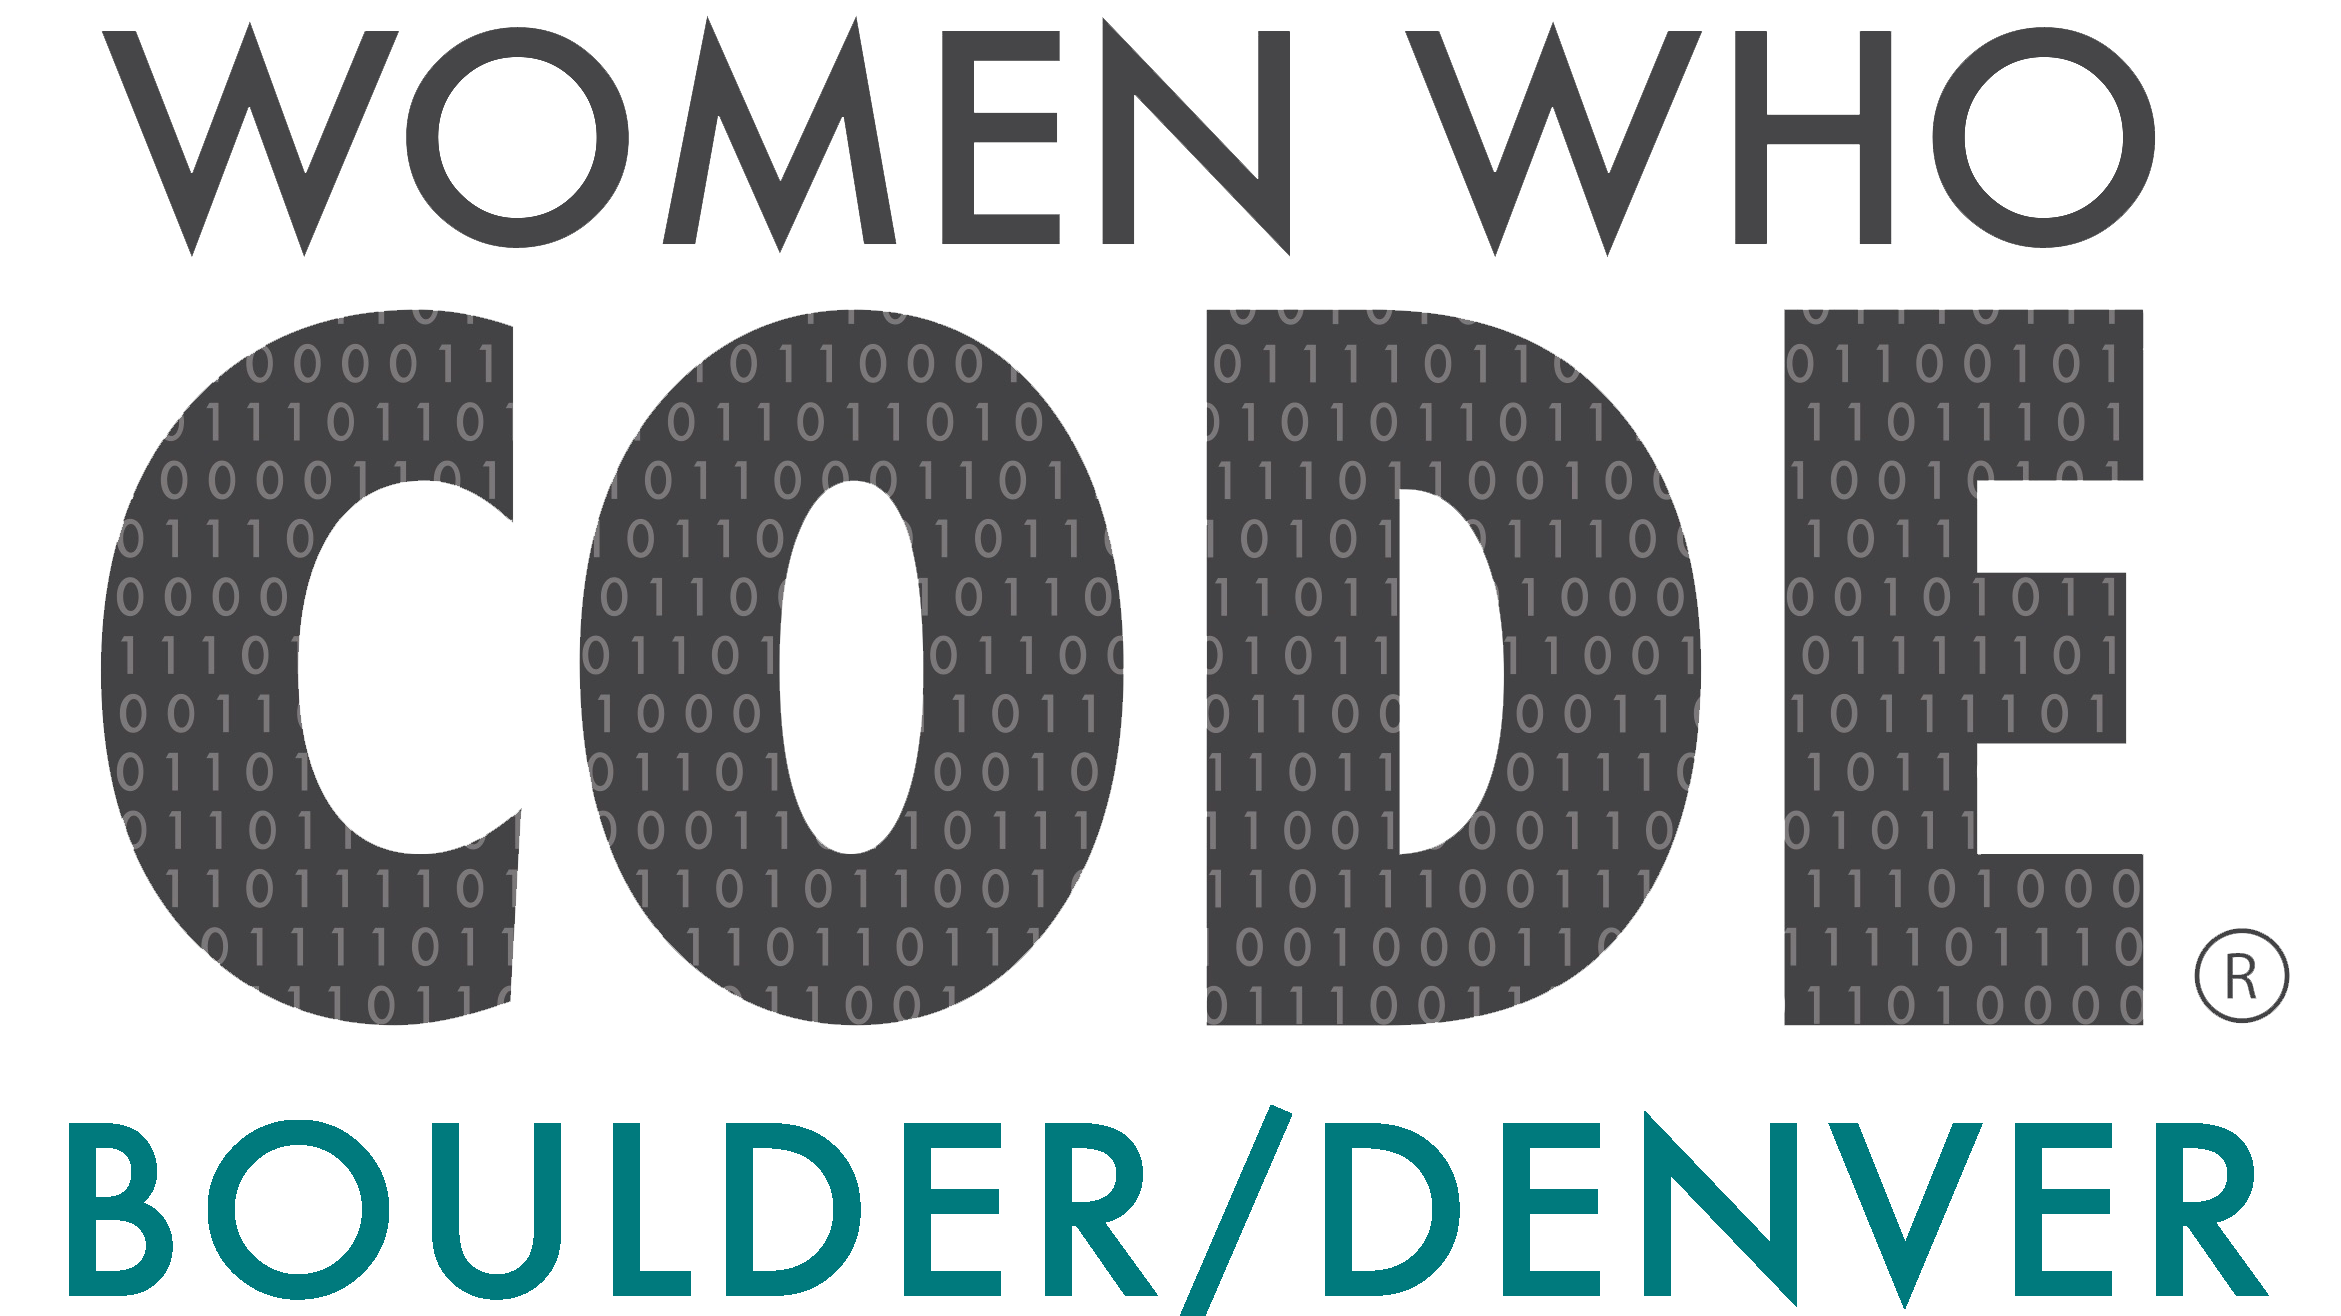 Women Who Code Boulder/Denver